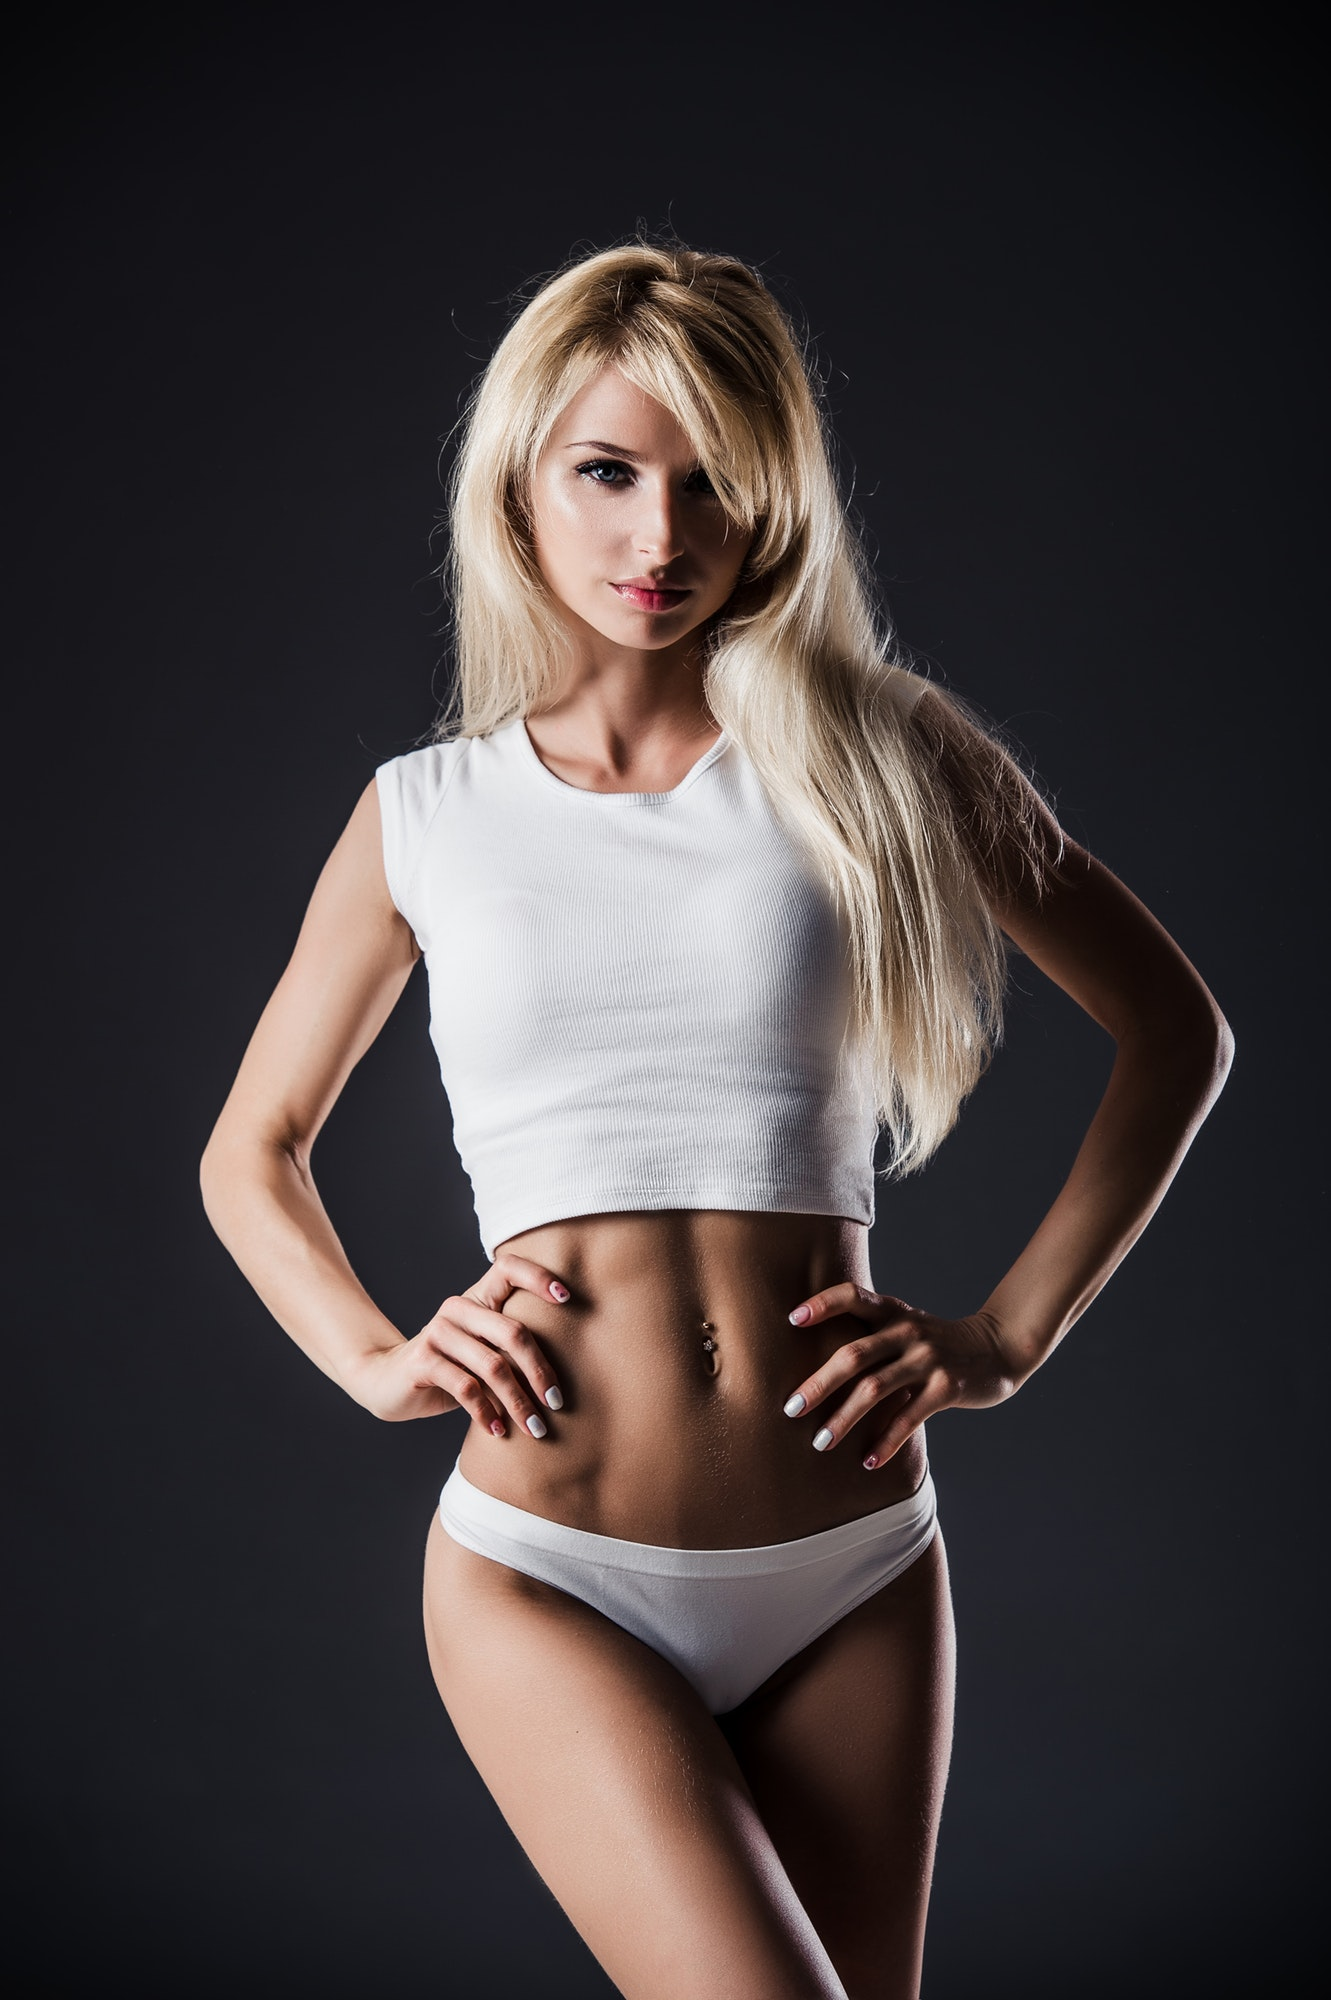 Fitness blonde woman shows her body. Fitness motivation. Perfect female sports figure. Fitness woman